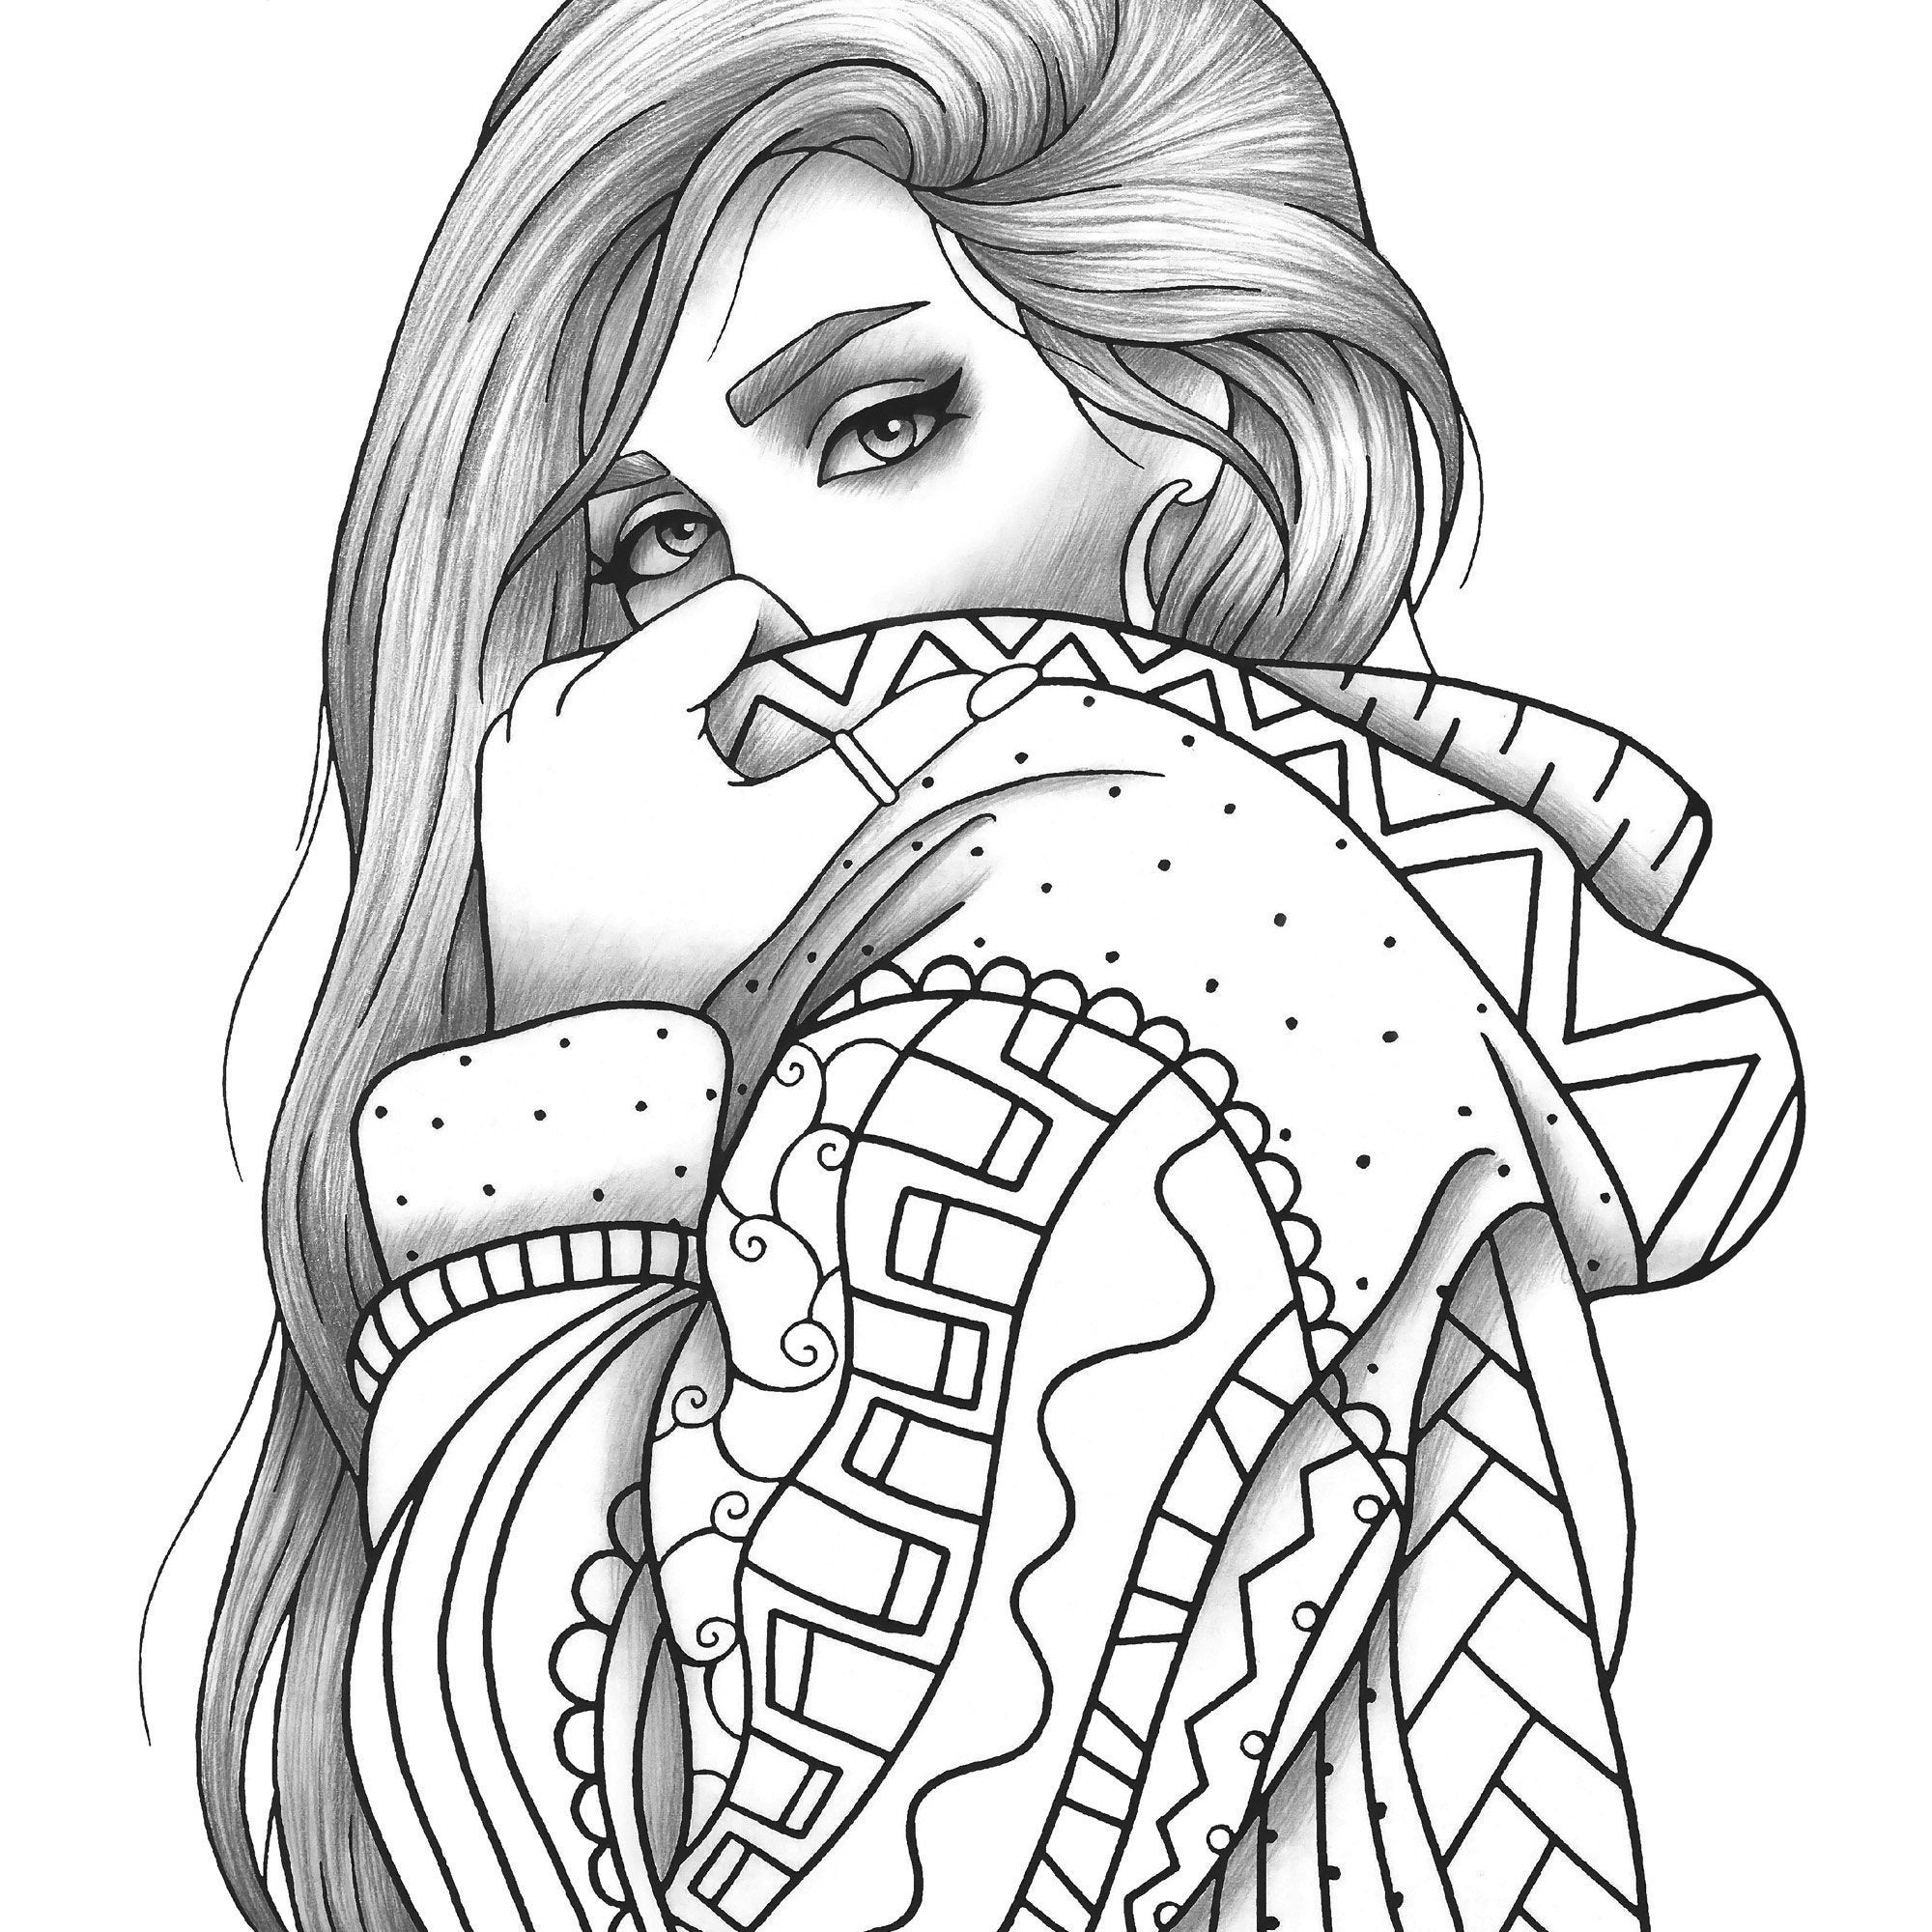 colouring in pictures for girls top 25 free printable lisa frank coloring pages online in girls for colouring pictures